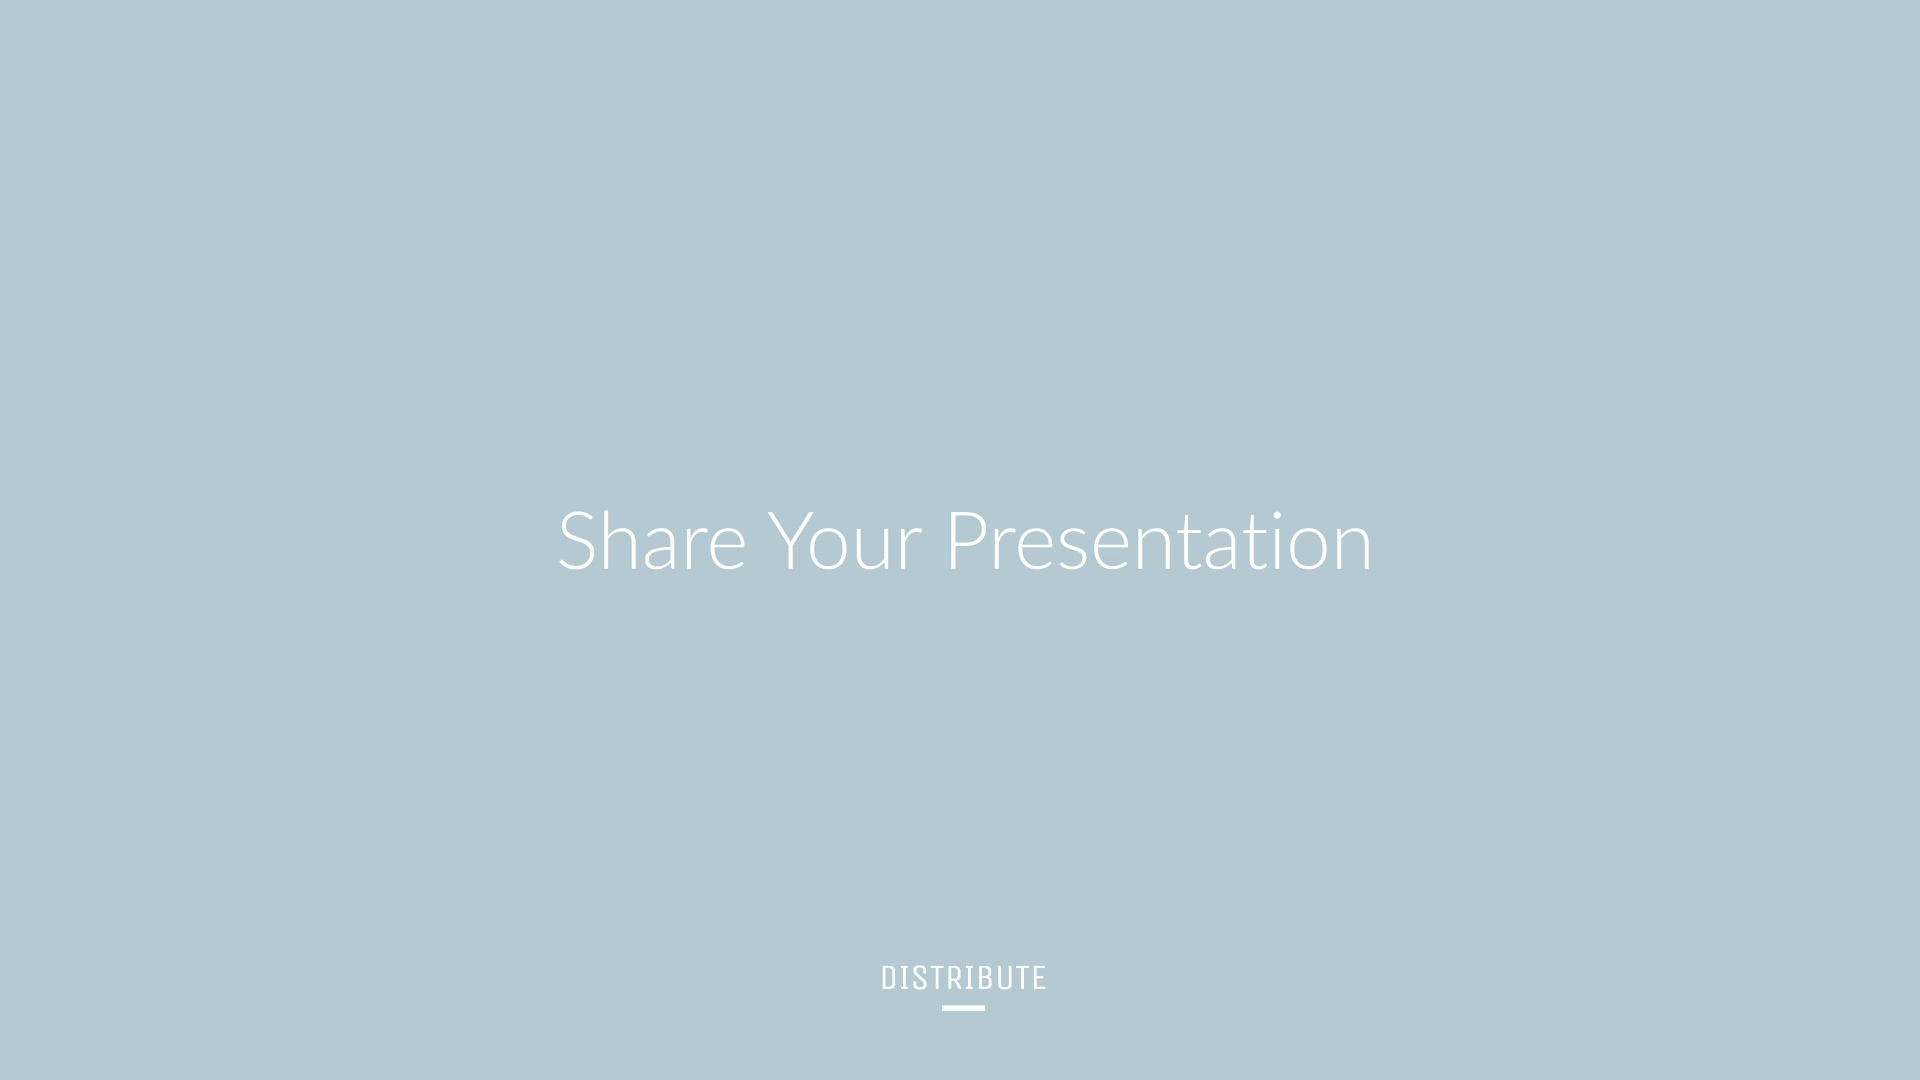 Brandboom Support - DISTRIBUTE - Share Your Presentation